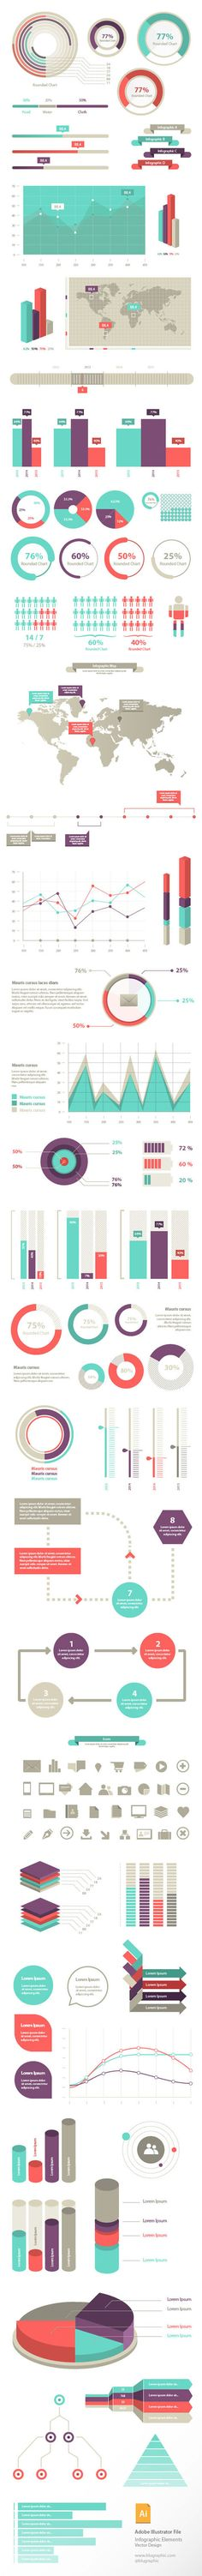 This is how you do data!  100+ Infographic Elements Vector Graphics